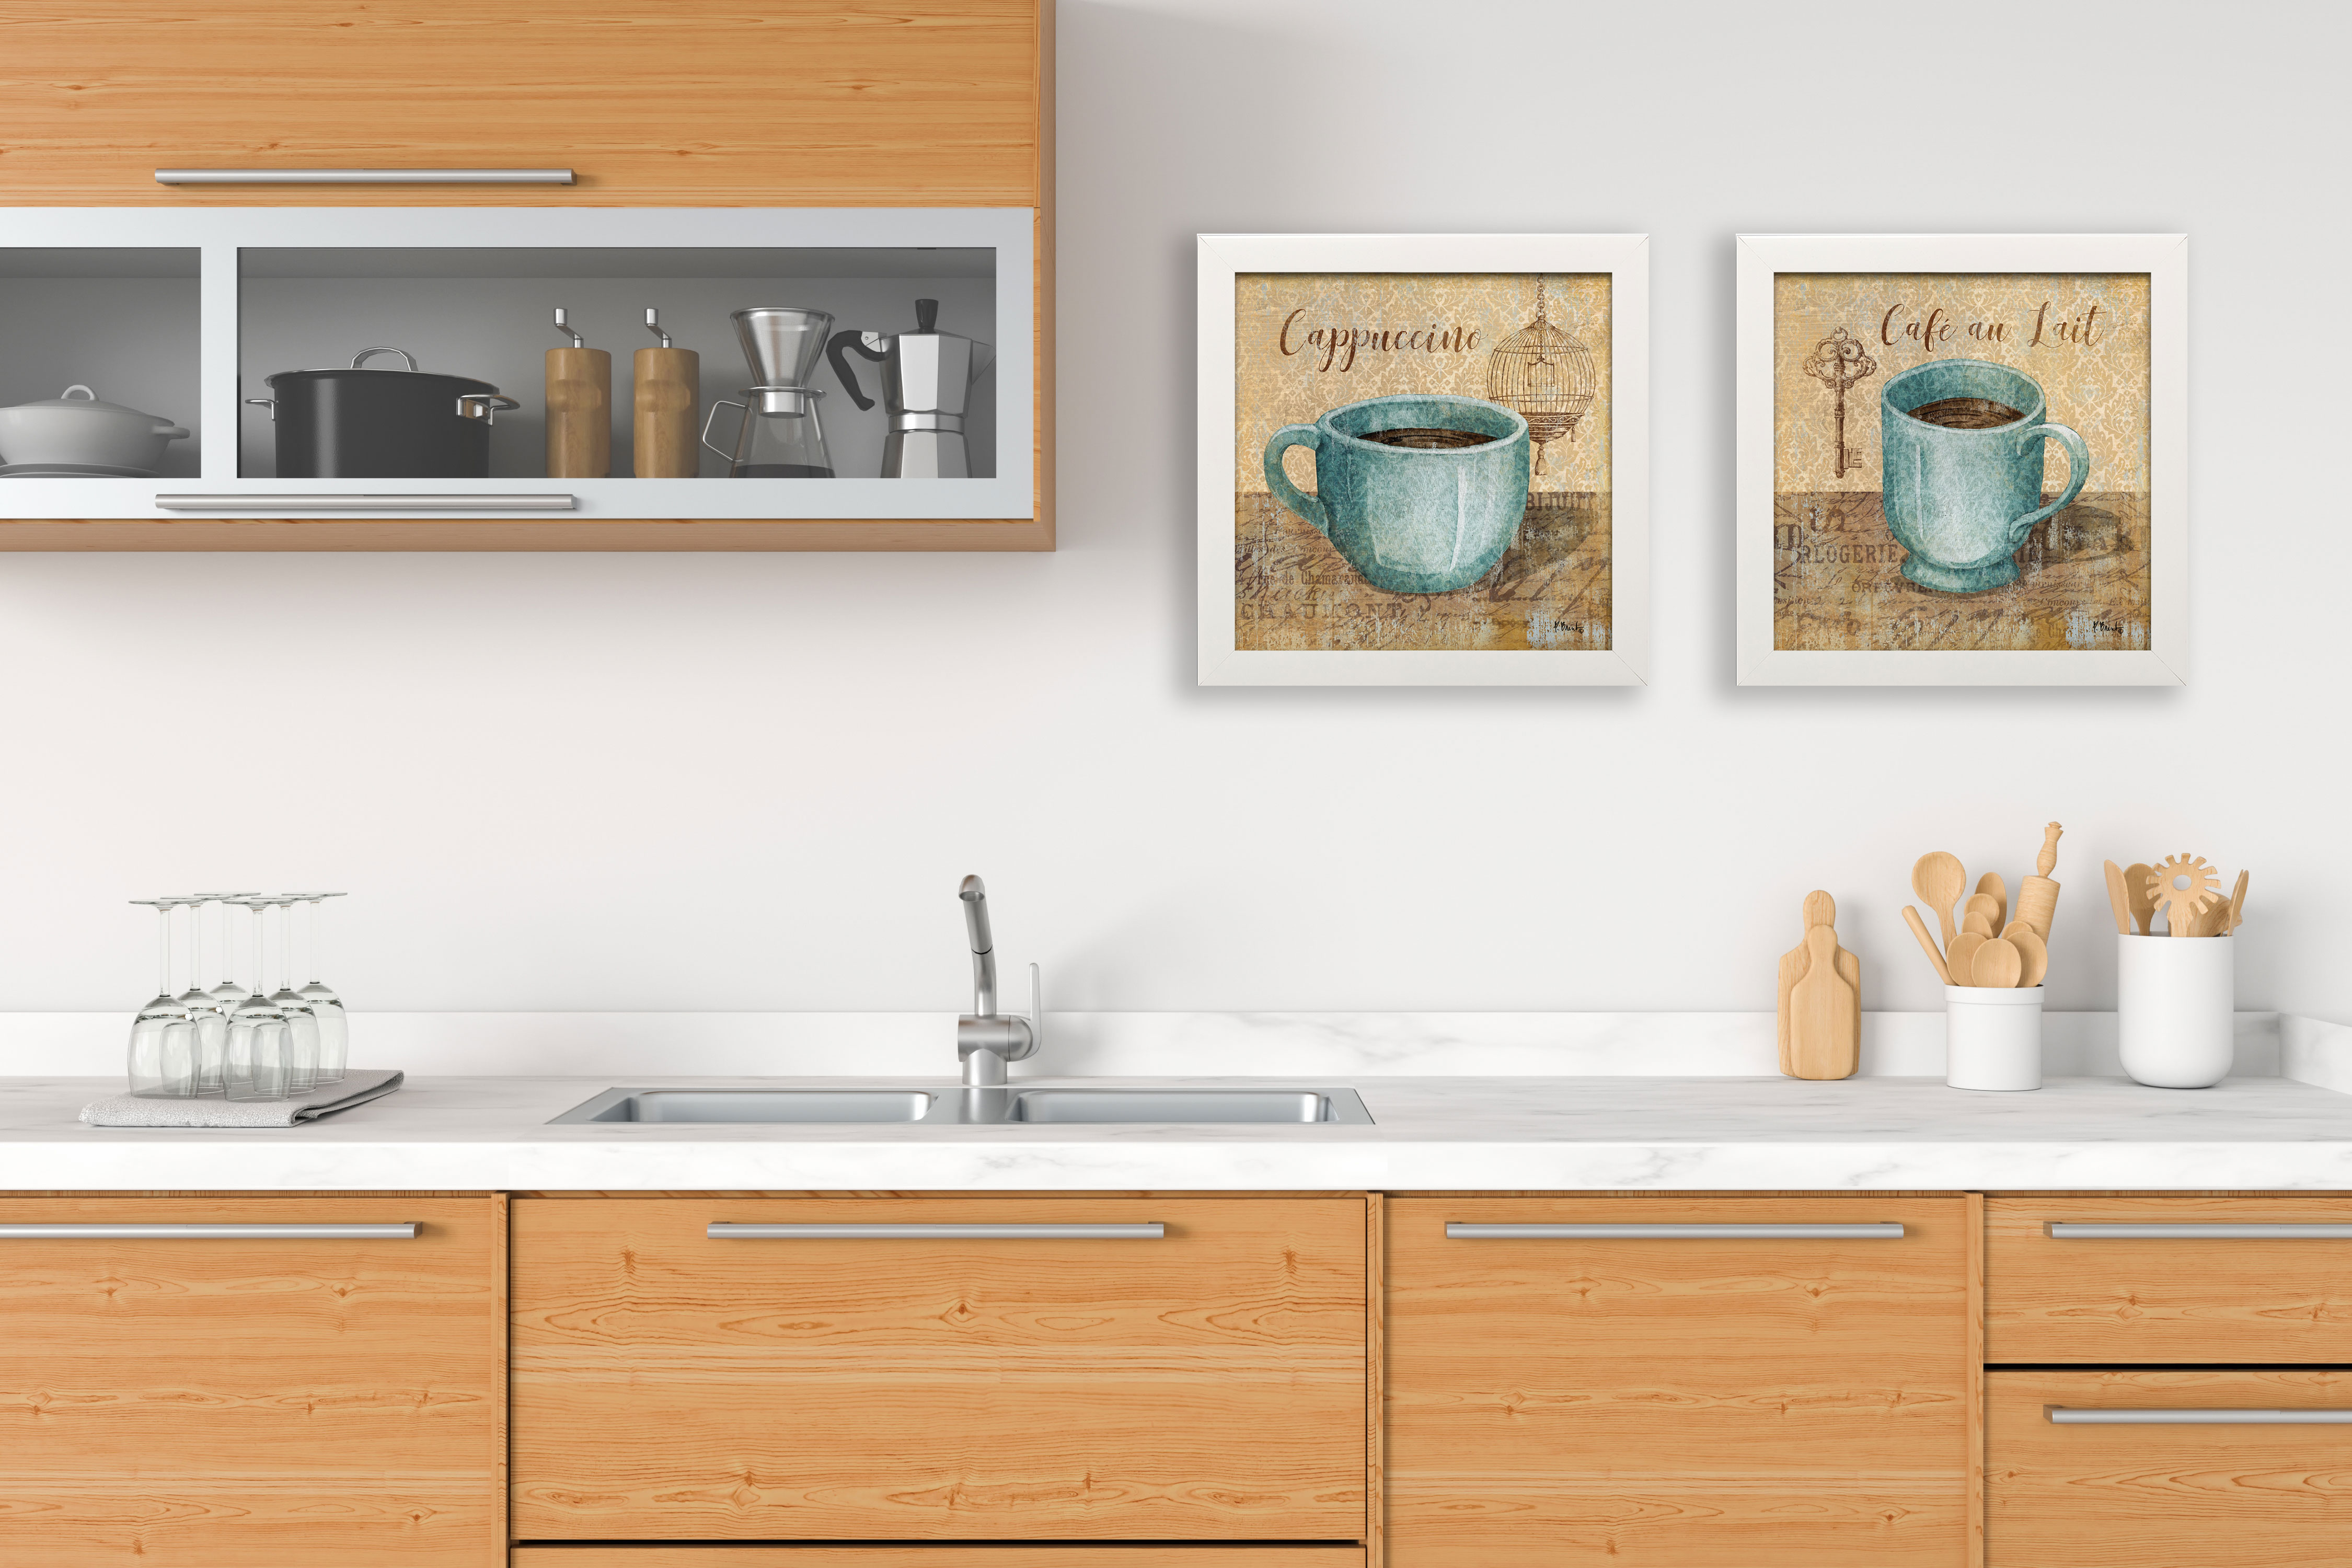 Ordinaire Gango Home Decor Popular Classic Coffee Key And Bird Cage Cafe Au Lait And  Cappuccino; Kitchen Wall Art By Paul Brent; Two Blue 12x12in Paper Prints  ...